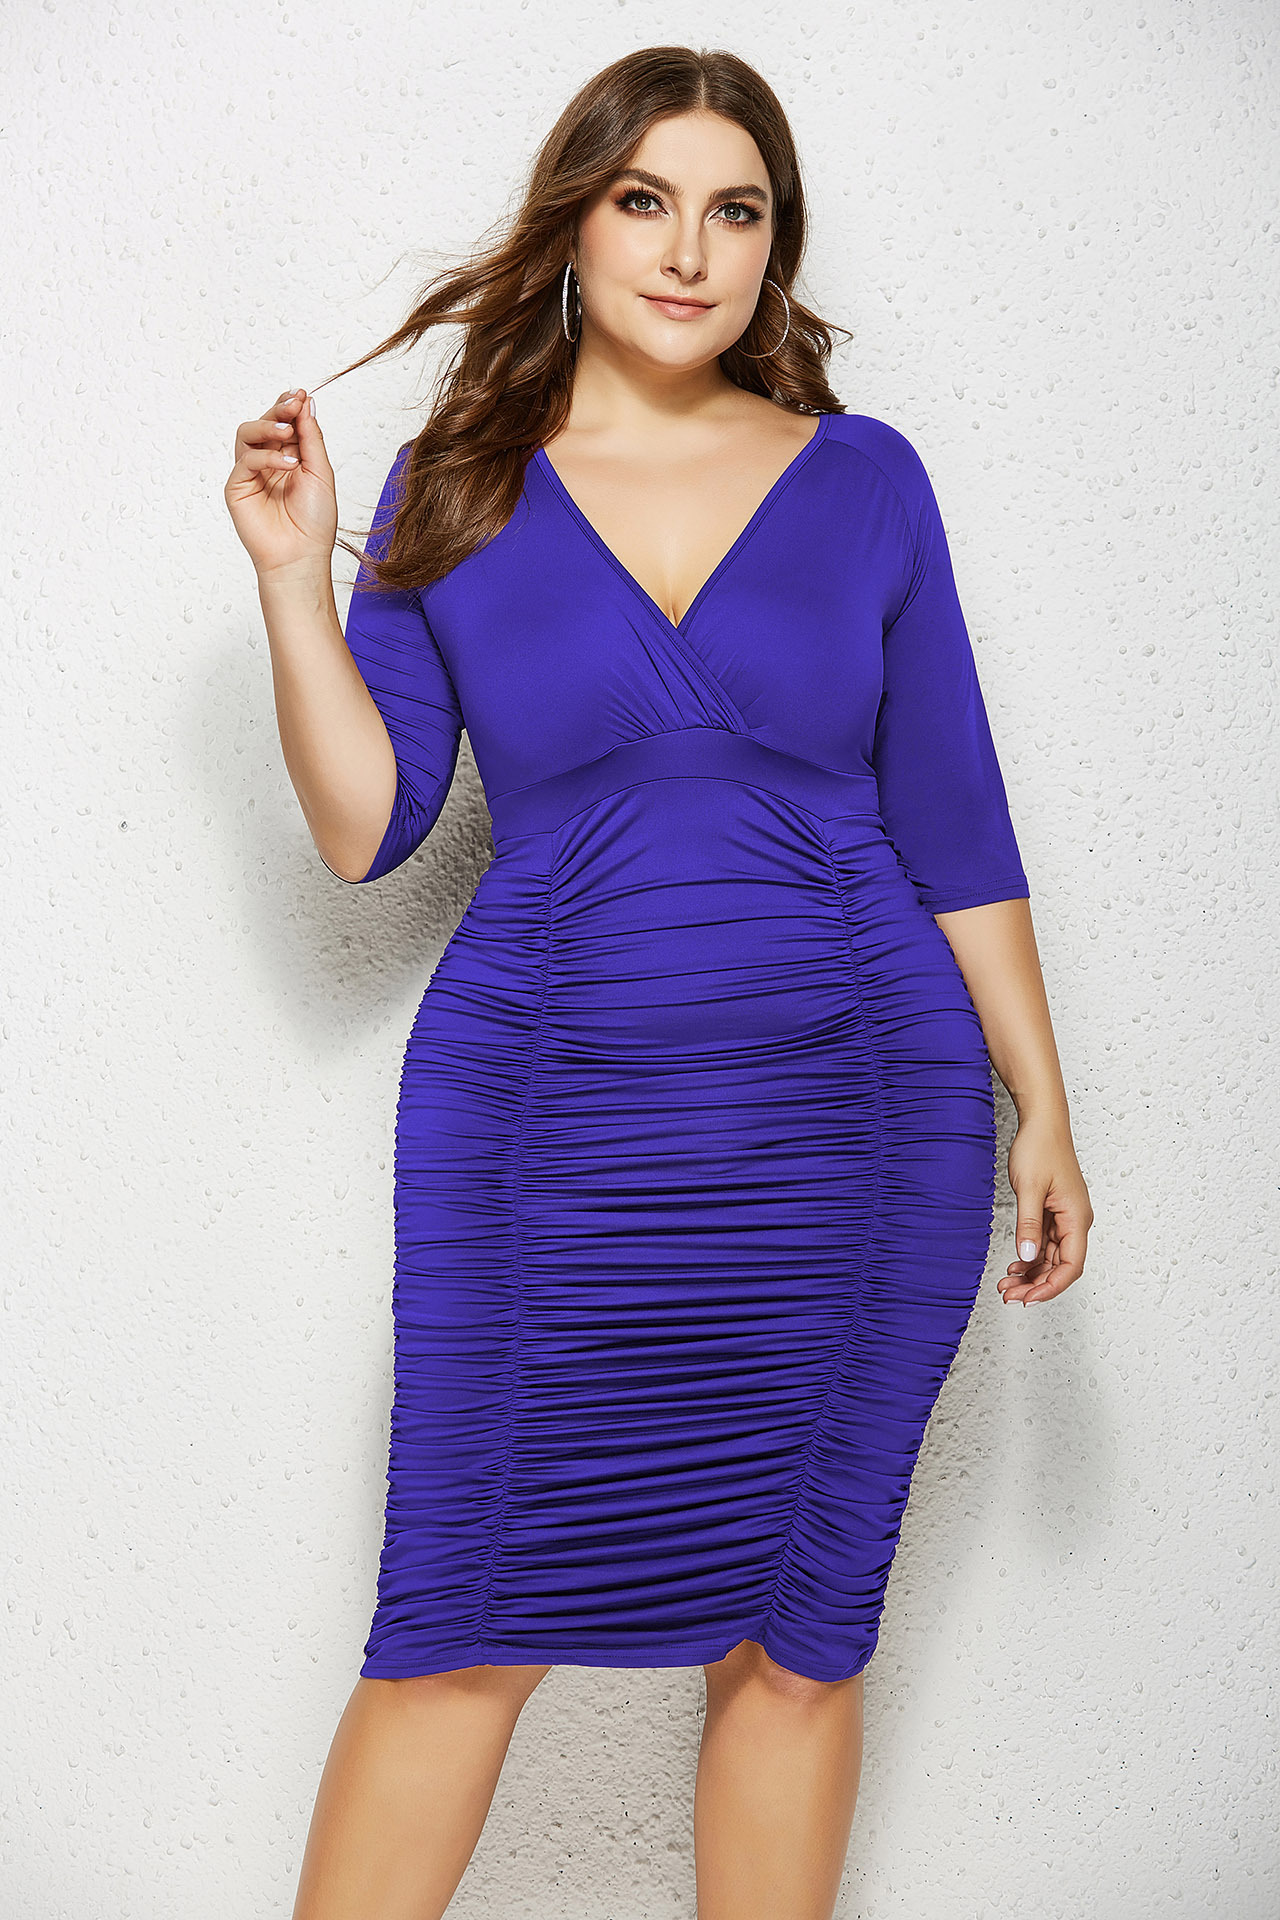 2019 Womens Bodycon Dress Plus Size Dresses Party Tight Dresses Spring  Summer Pencil Dresses From Wuarray, $13.18 | DHgate.Com